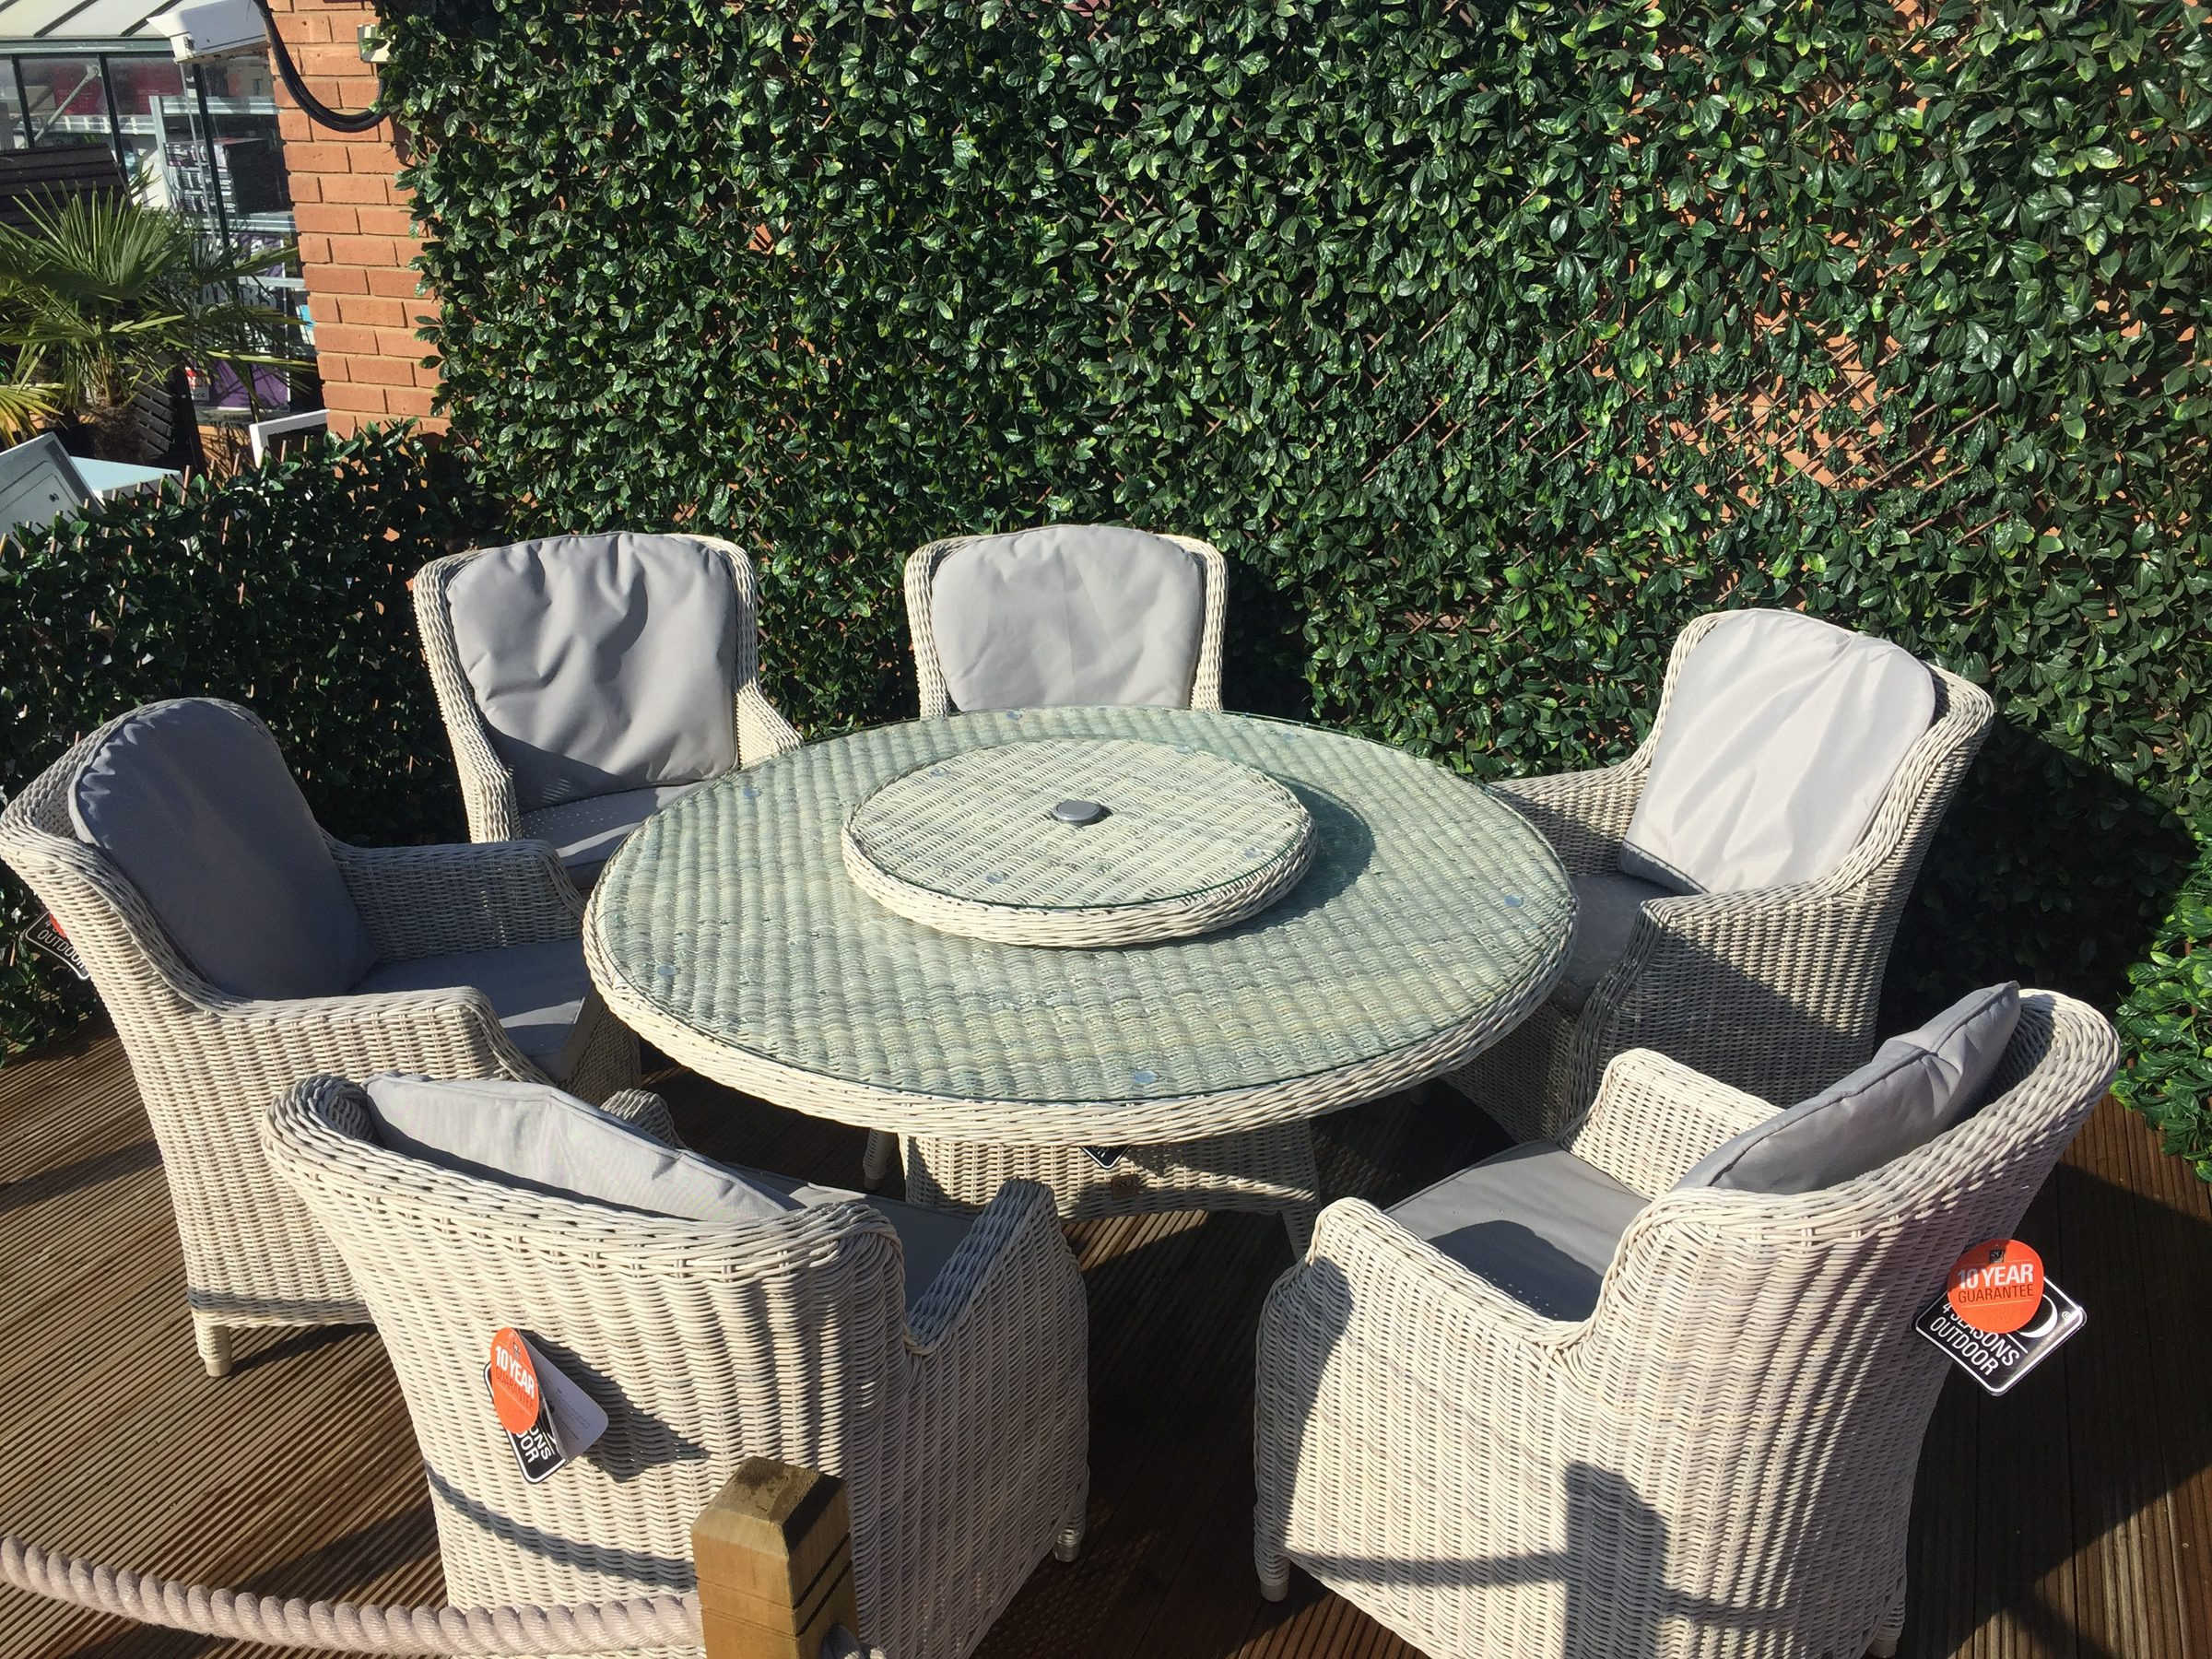 Taste by 4 Seasons Brighton 6 seater set with lazy susan